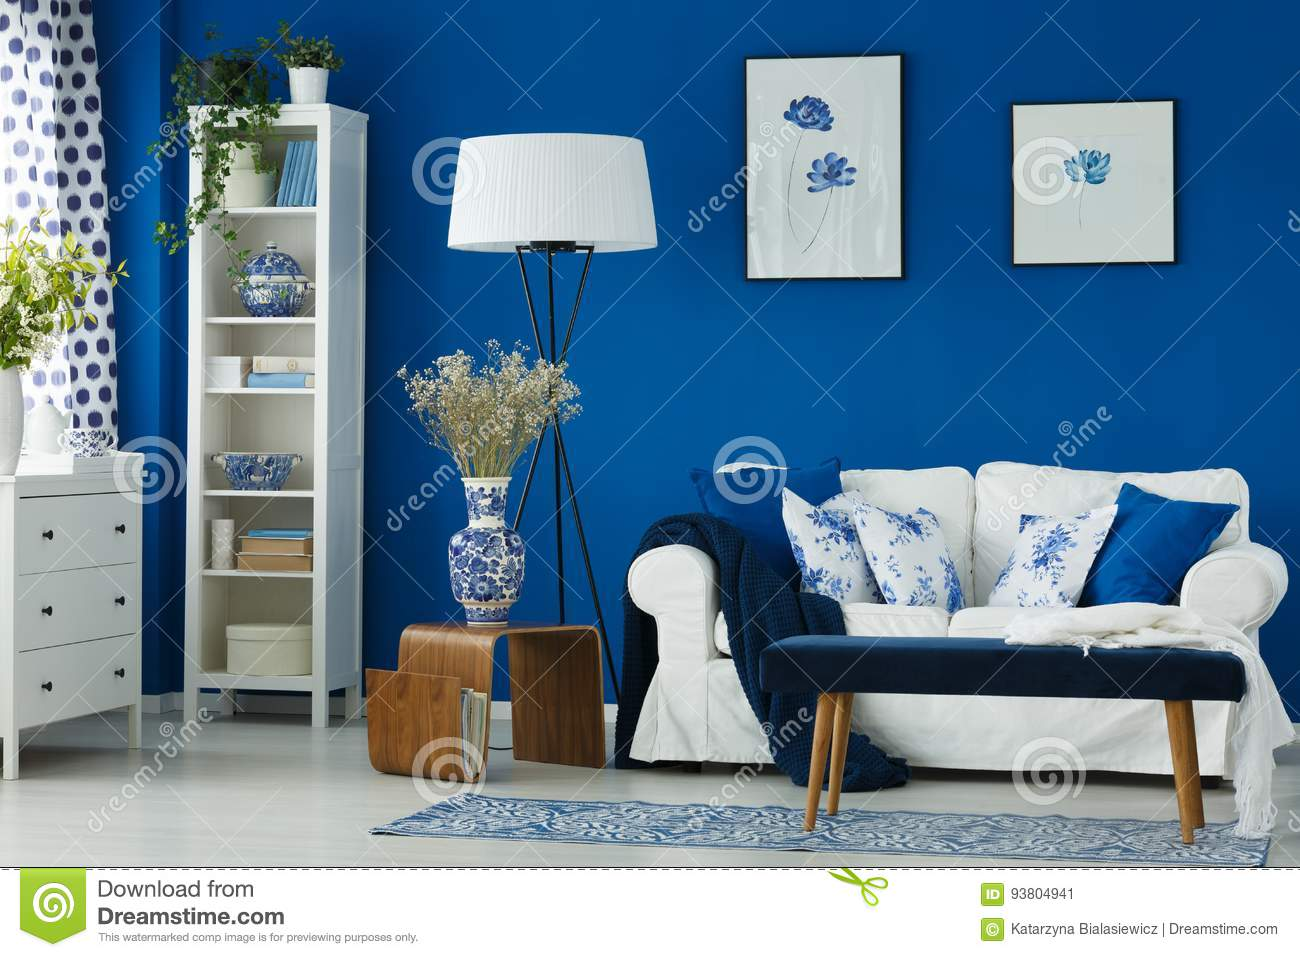 Living Room With Blue Walls Stock Image - Image of sofa ...